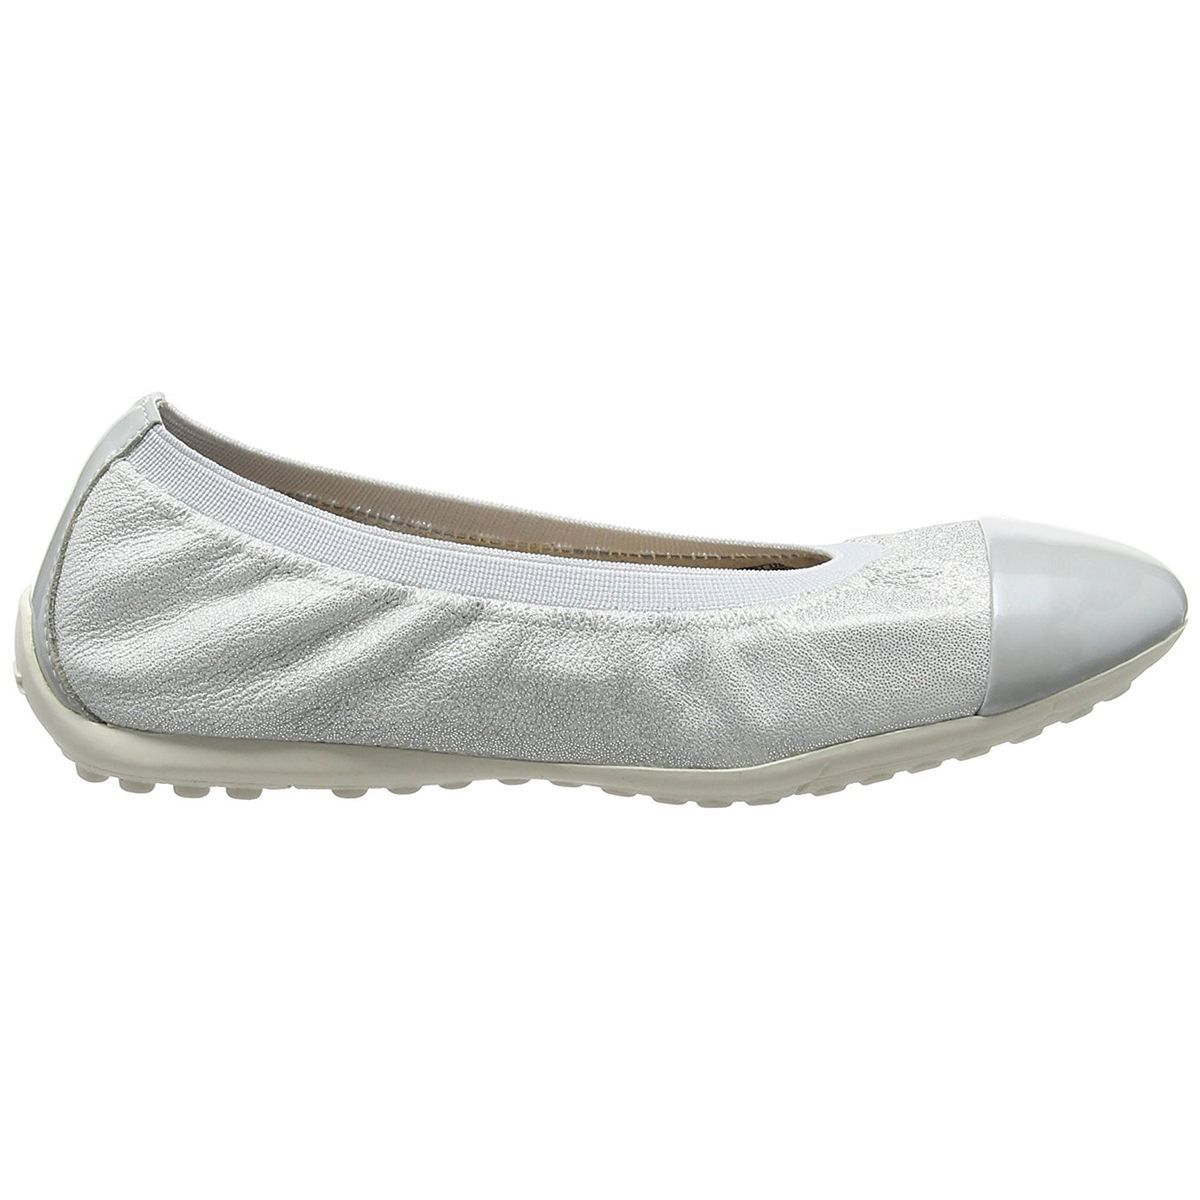 STONE 1 W PIUMA BALLERINE:PEARL/CUIR + SYNTHETIQUE/CUIR + SYNTHETIQUE/SYNTHETIQUE/Pearl